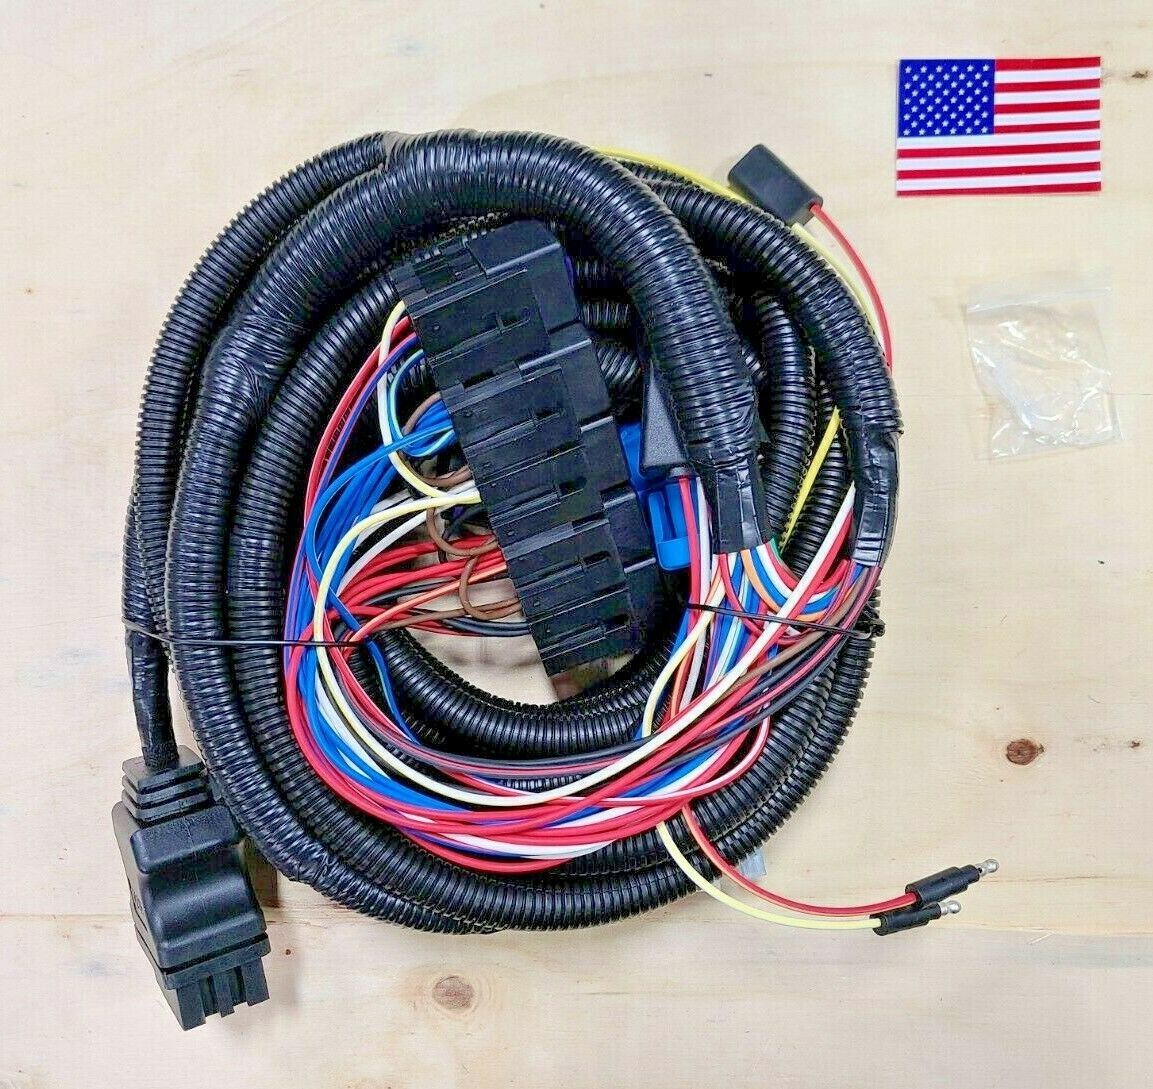 Boss Bv9354 Wiring Harness - Universal Wiring Diagrams website -  website.sceglicongusto.itwebsite.sceglicongusto.it